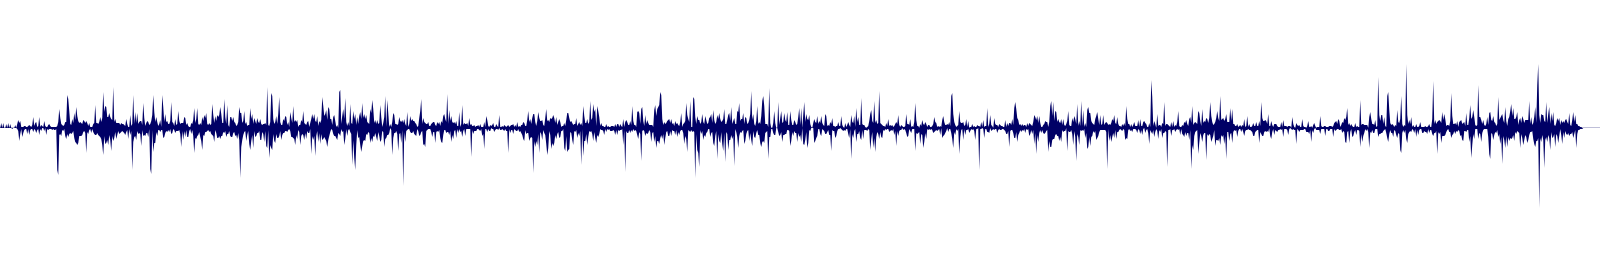 waveform of track #159909